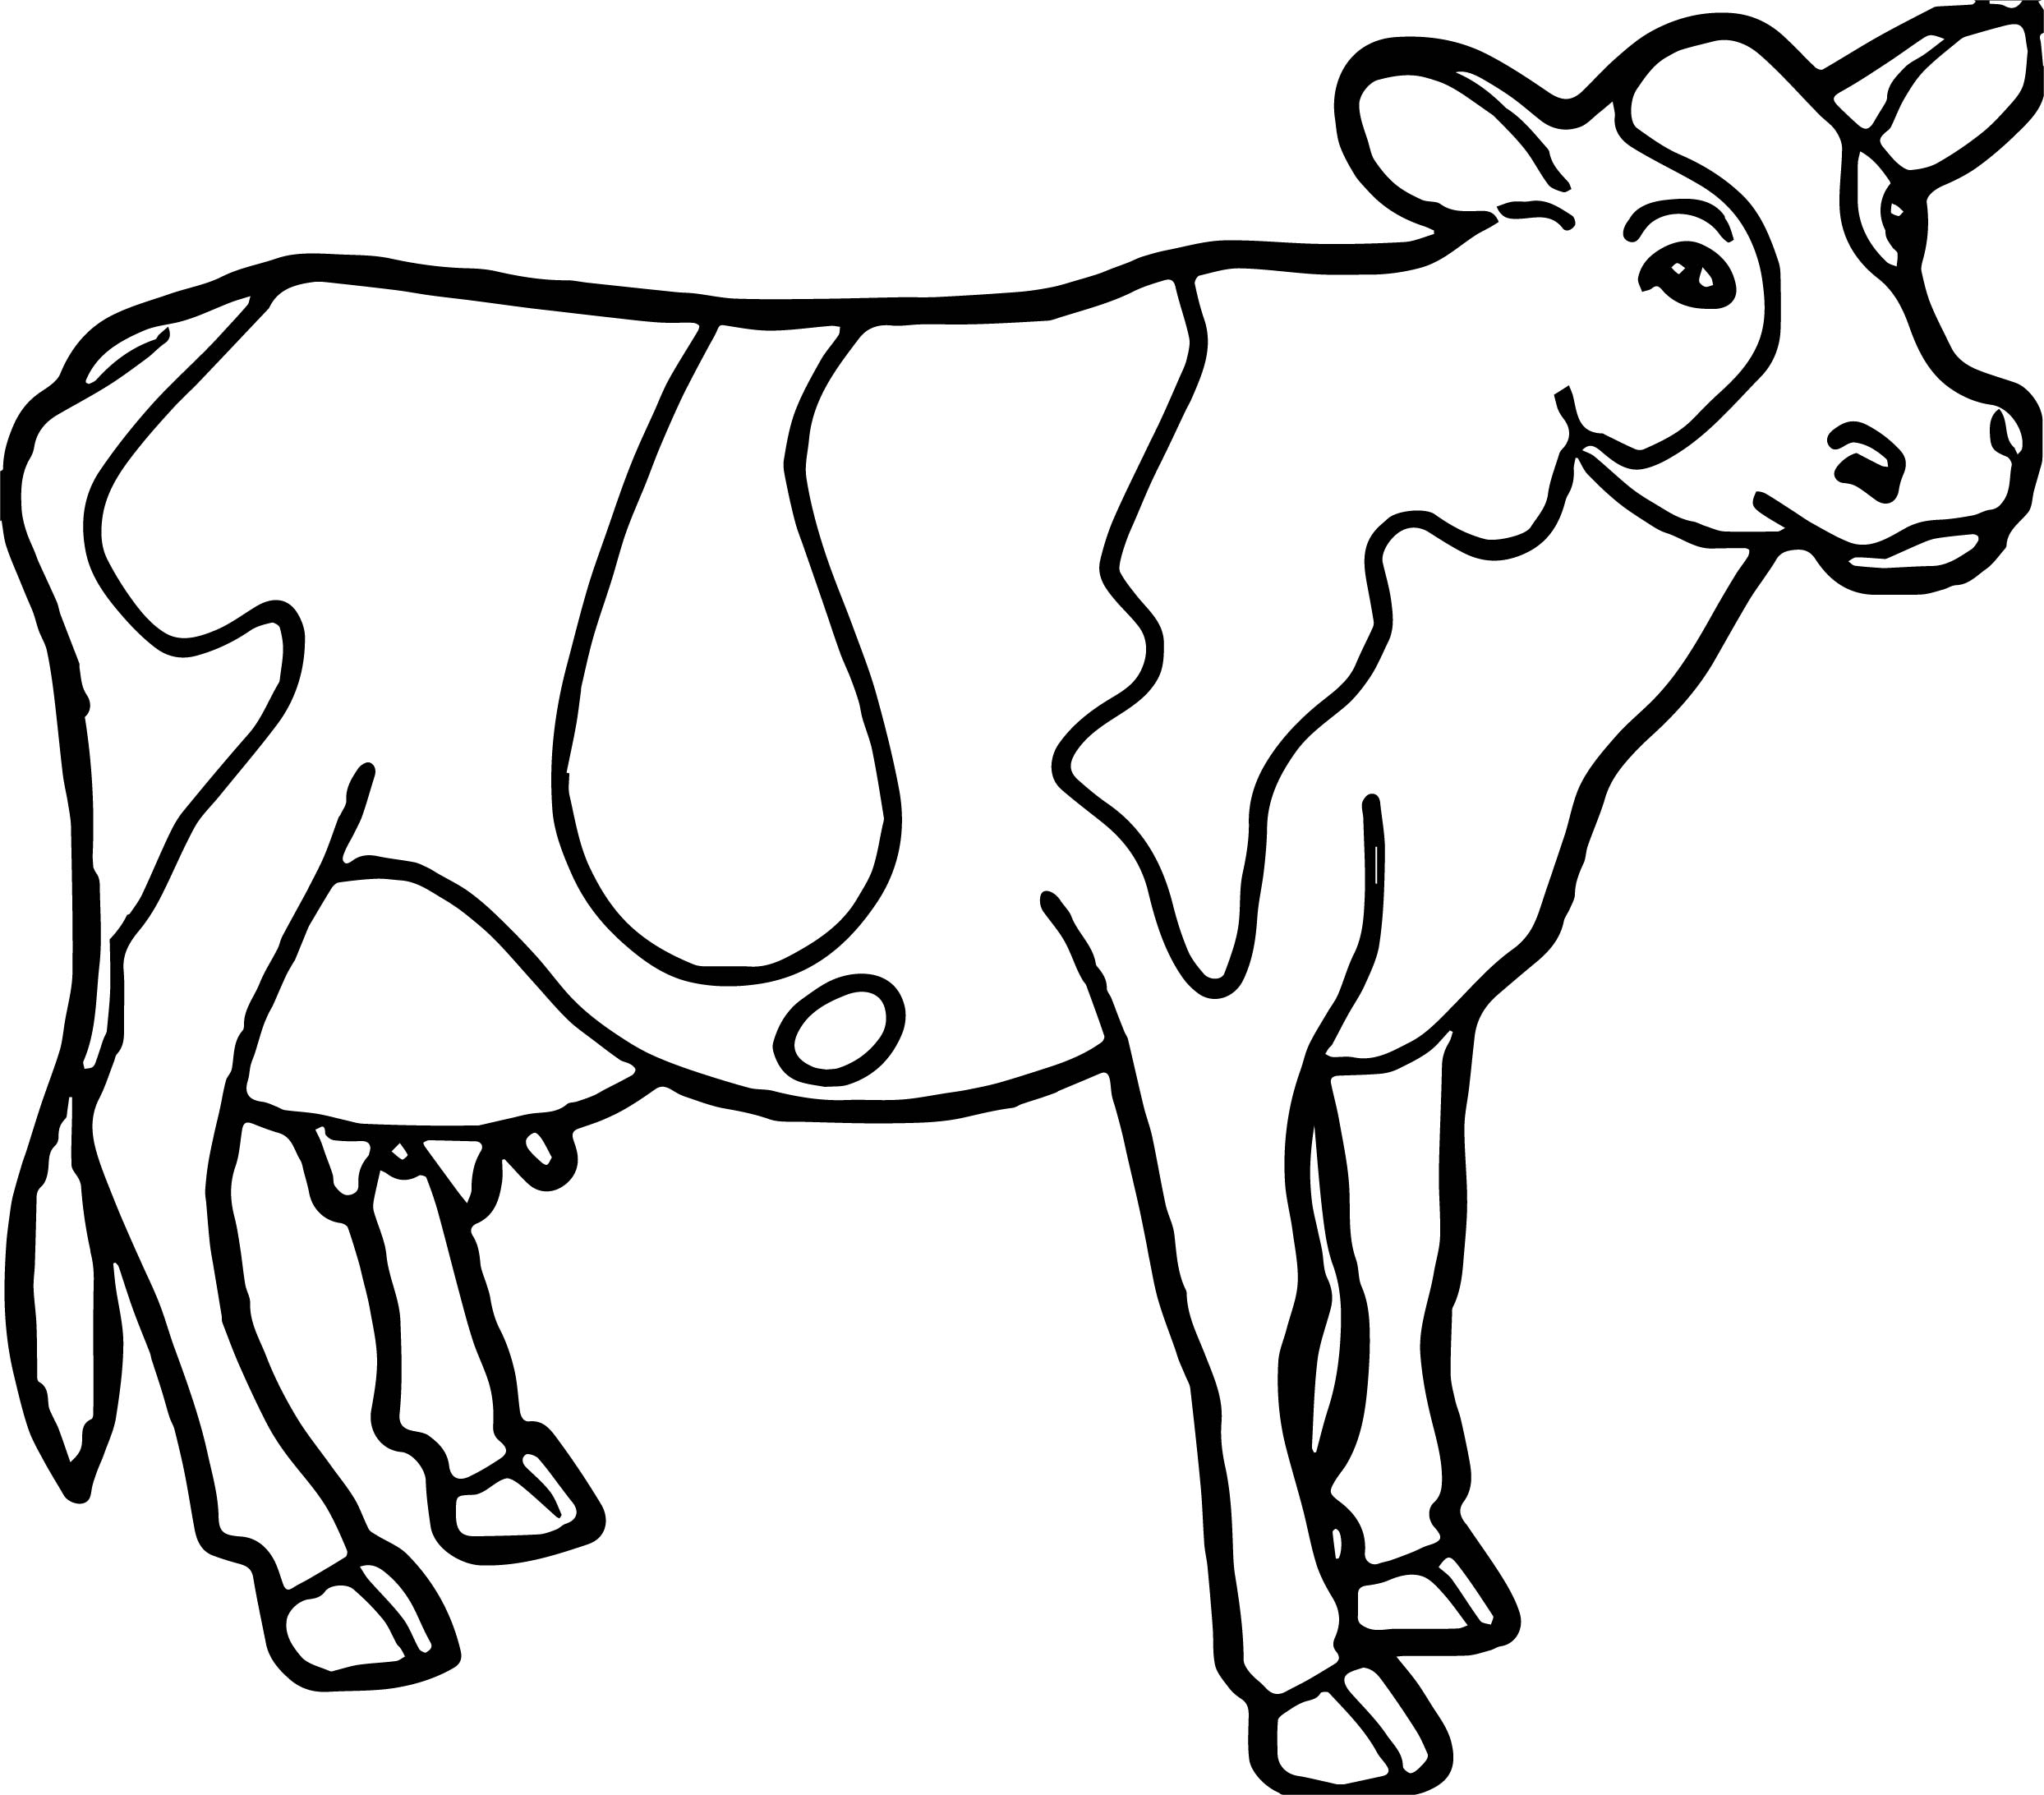 dairy cow coloring pages dairy cow with long eyelashes coloring pages netart in pages coloring cow dairy